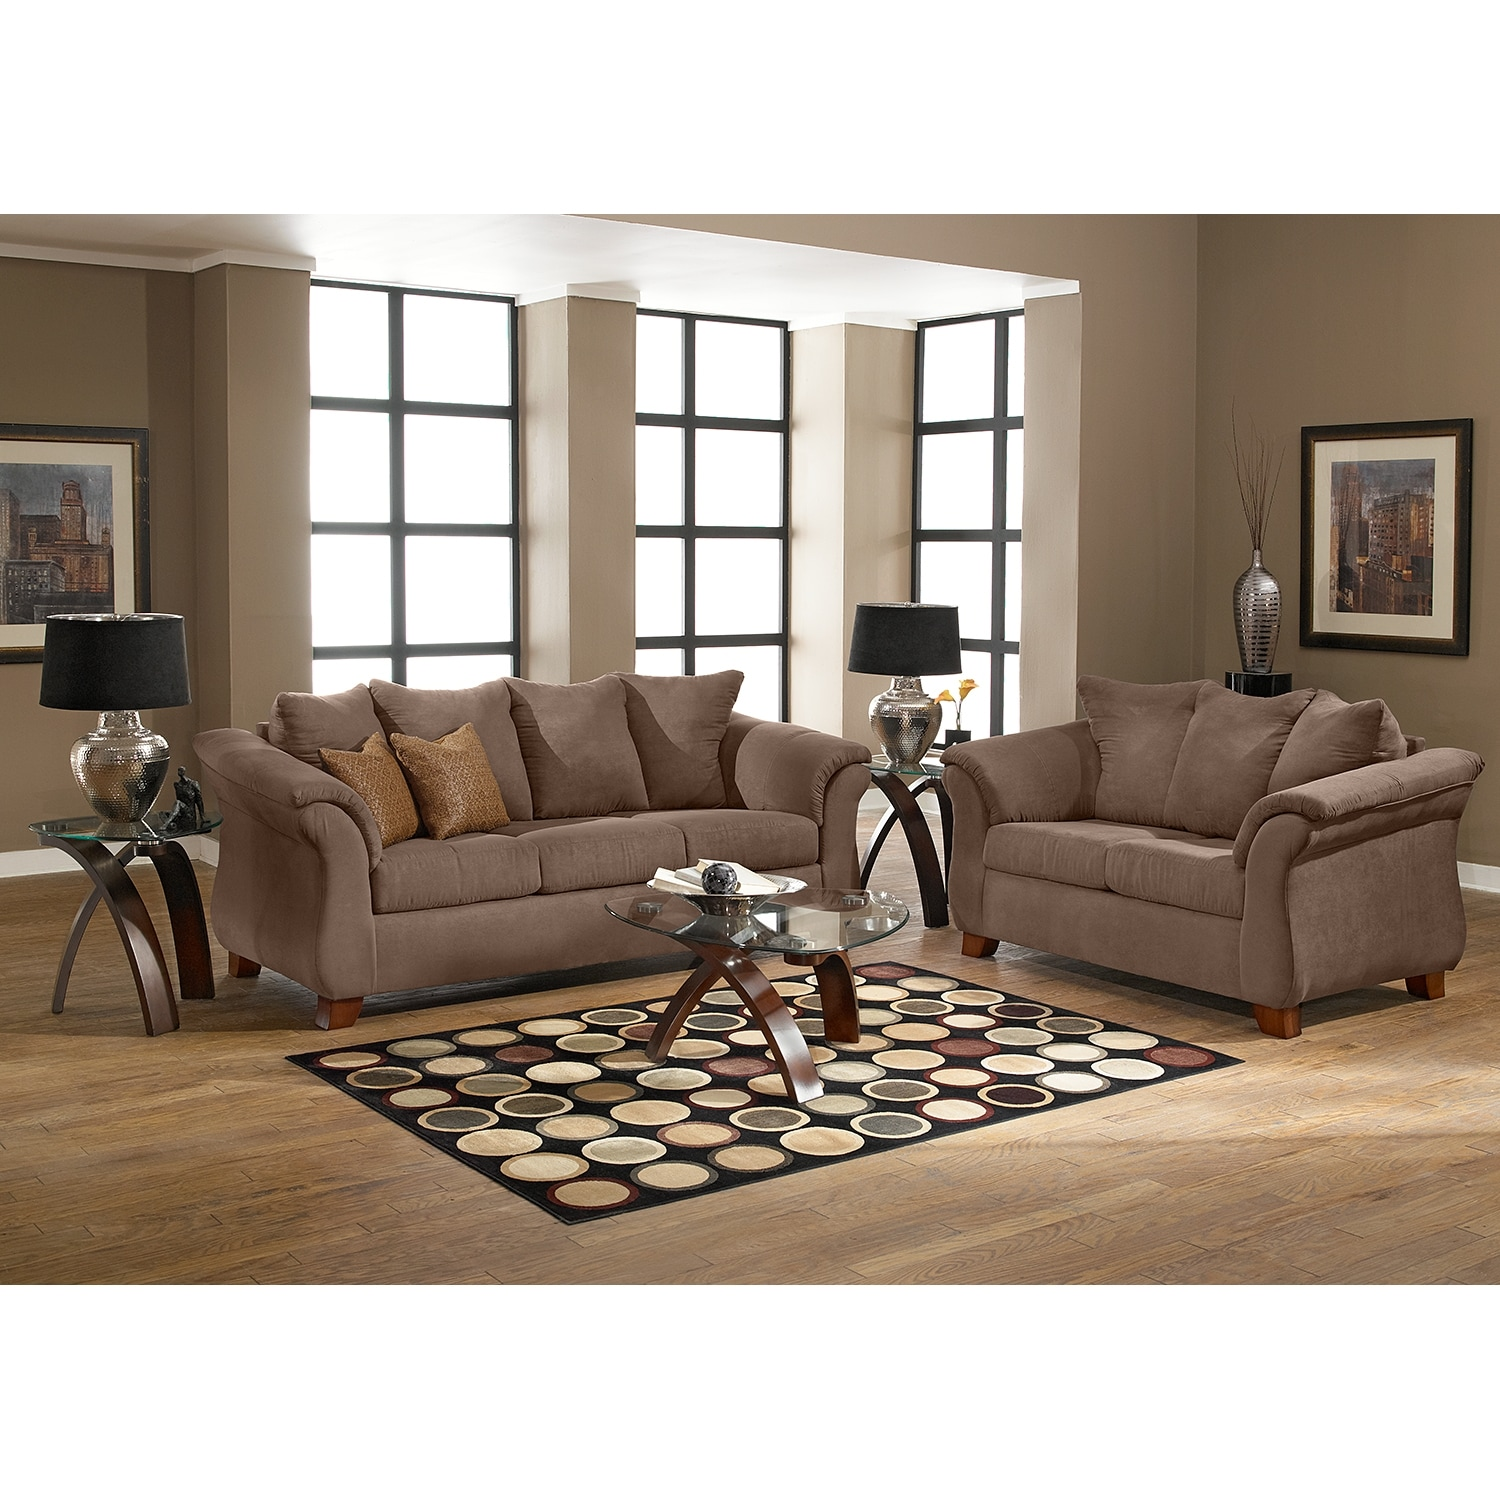 Adrian sofa taupe american signature furniture for Living room coach